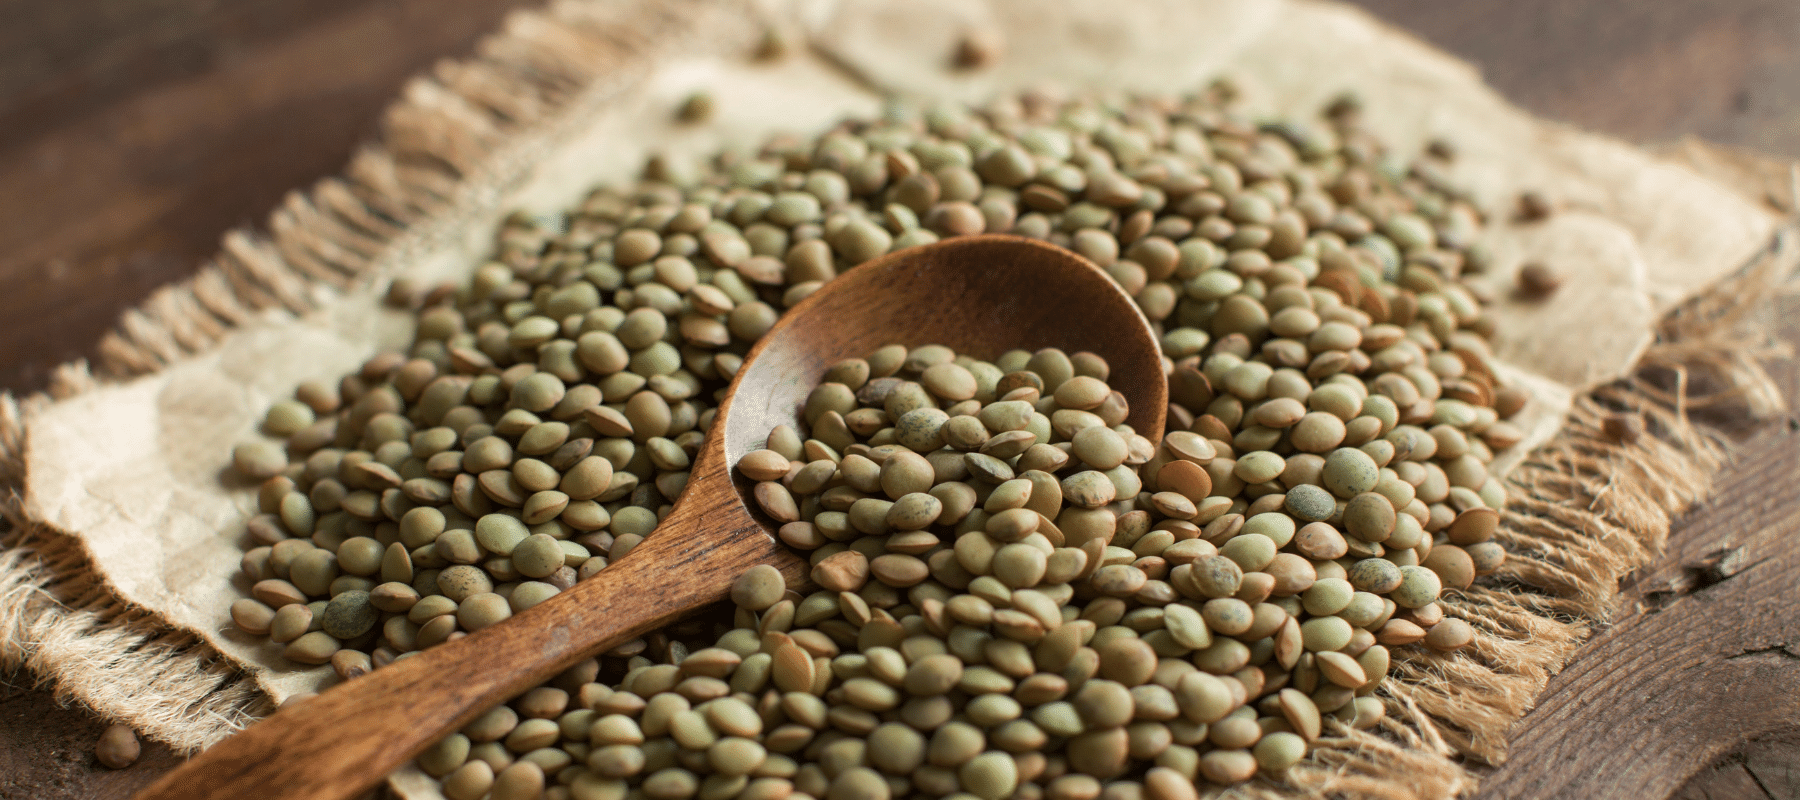 Spoon Scooping Wholesome Green Lentils